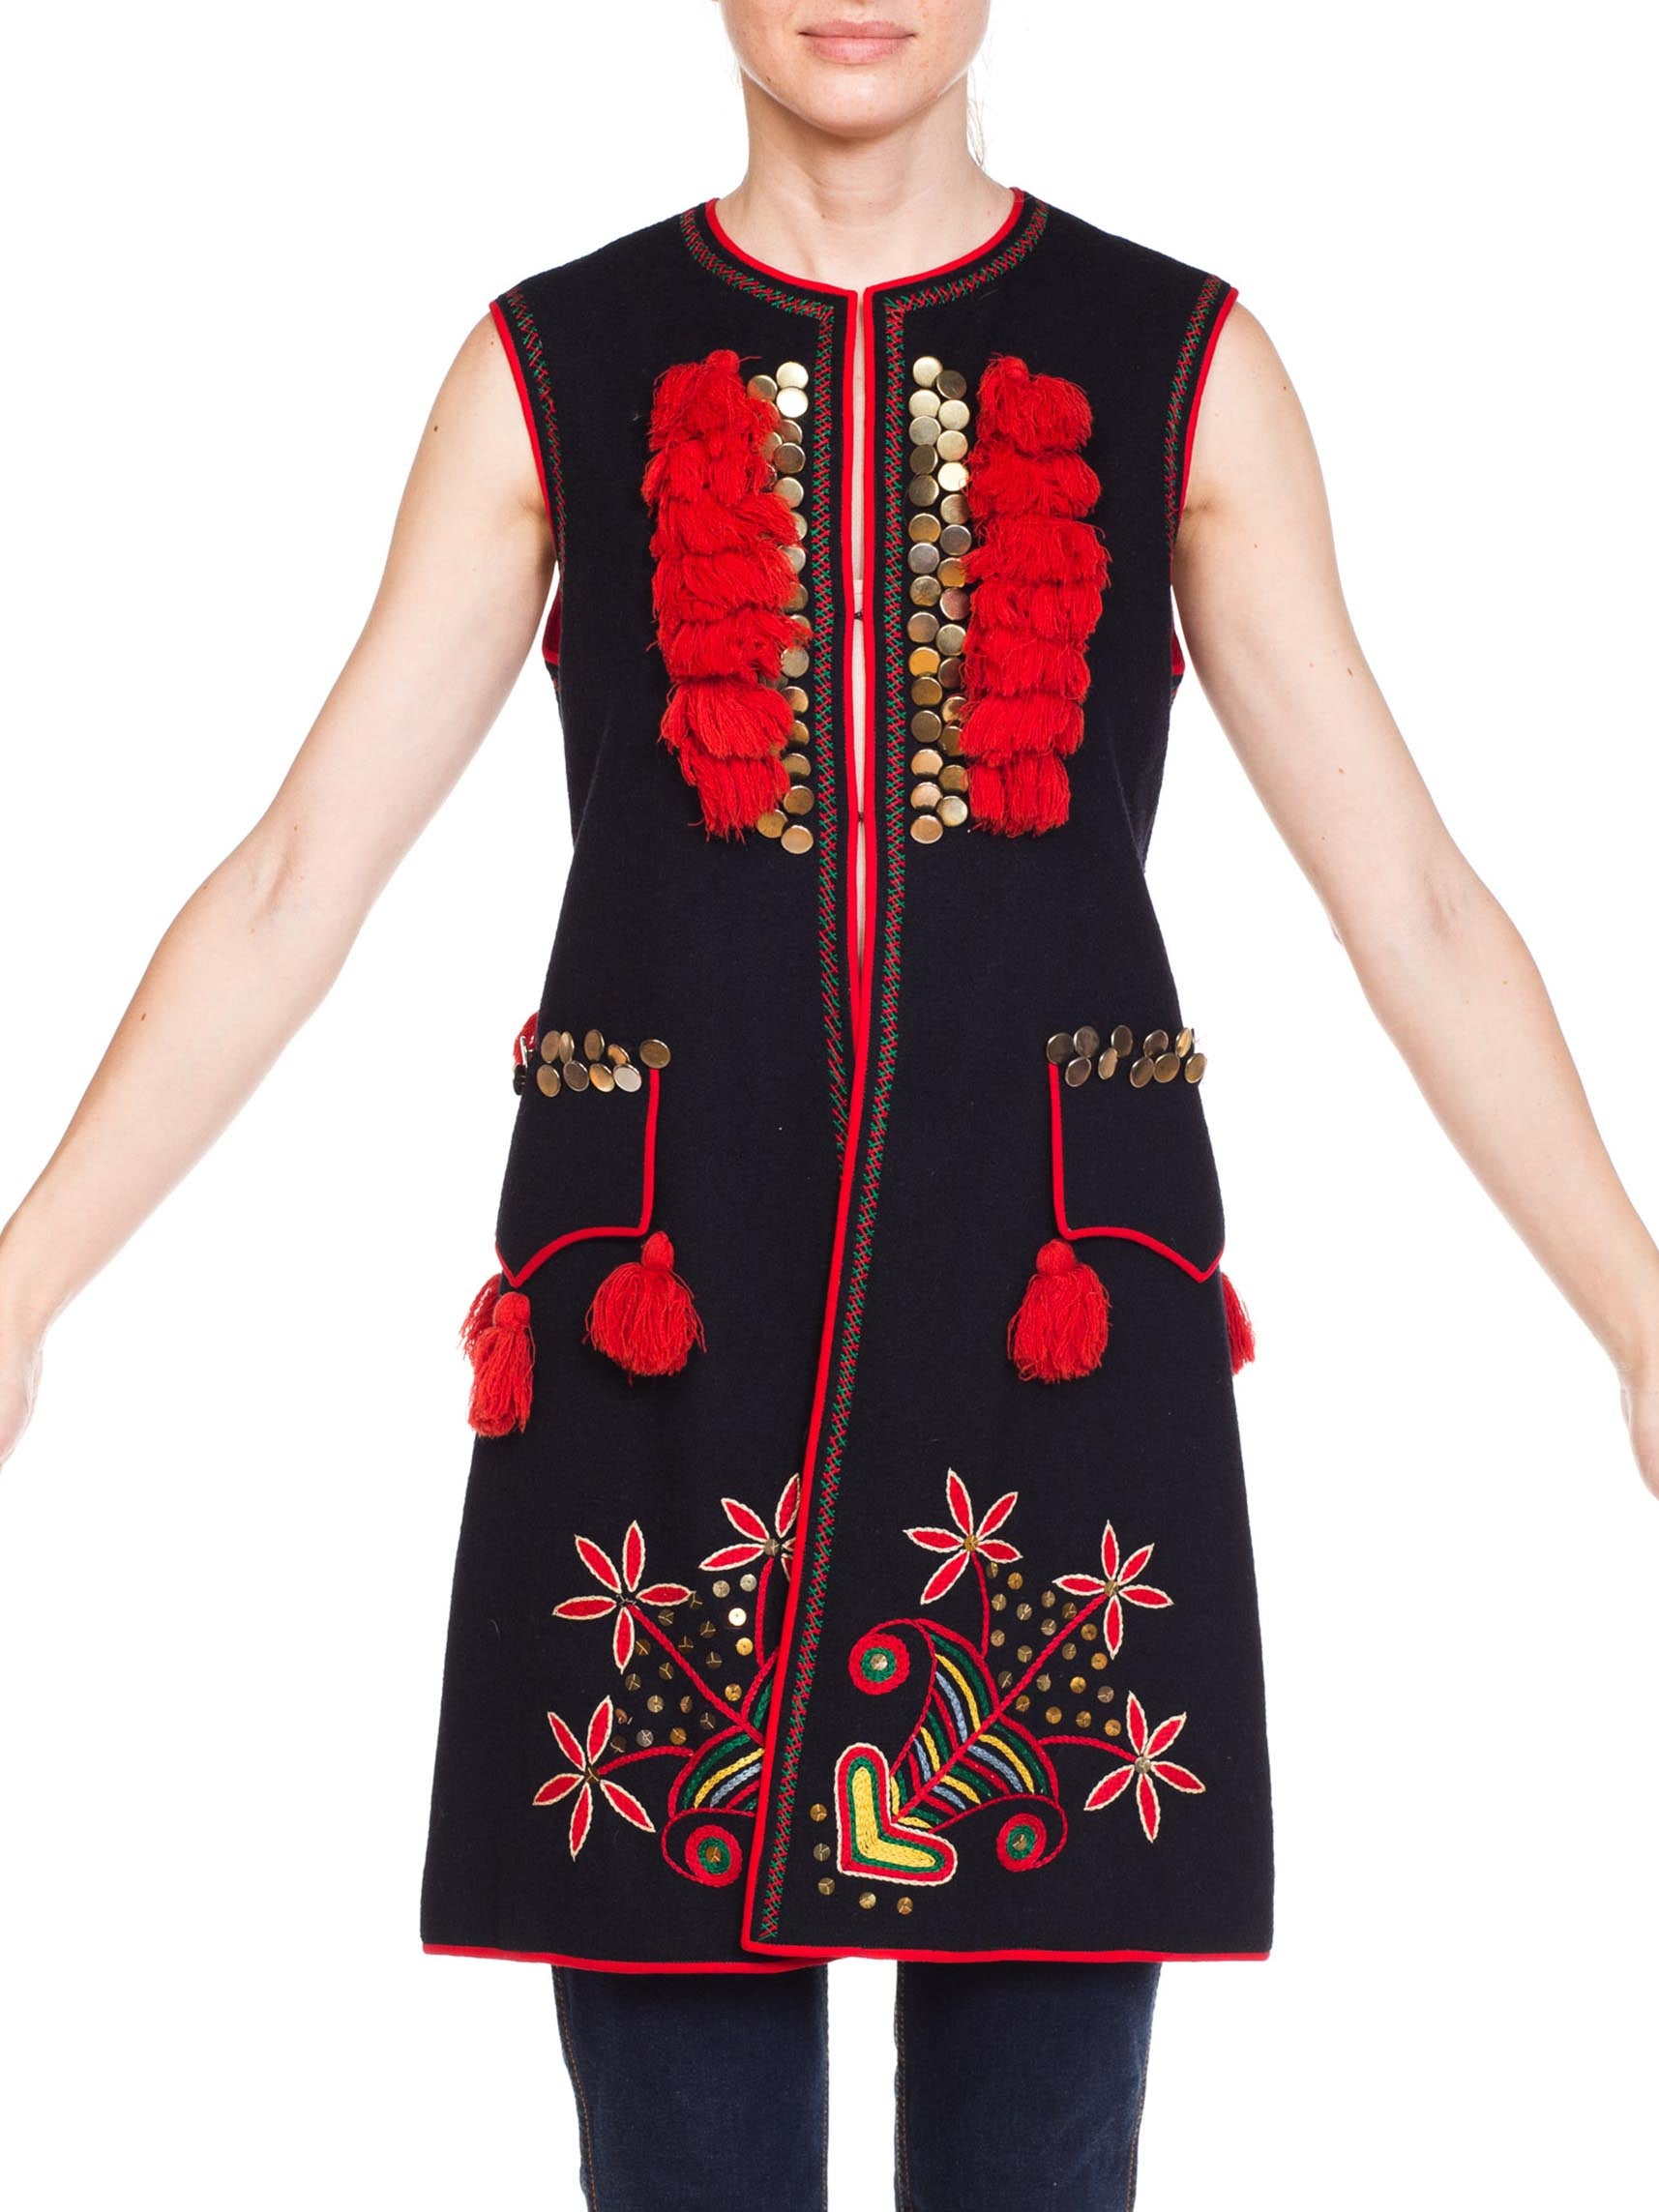 1970S Boho Ethnic Embroiderd Vest With Buttons And Tassels